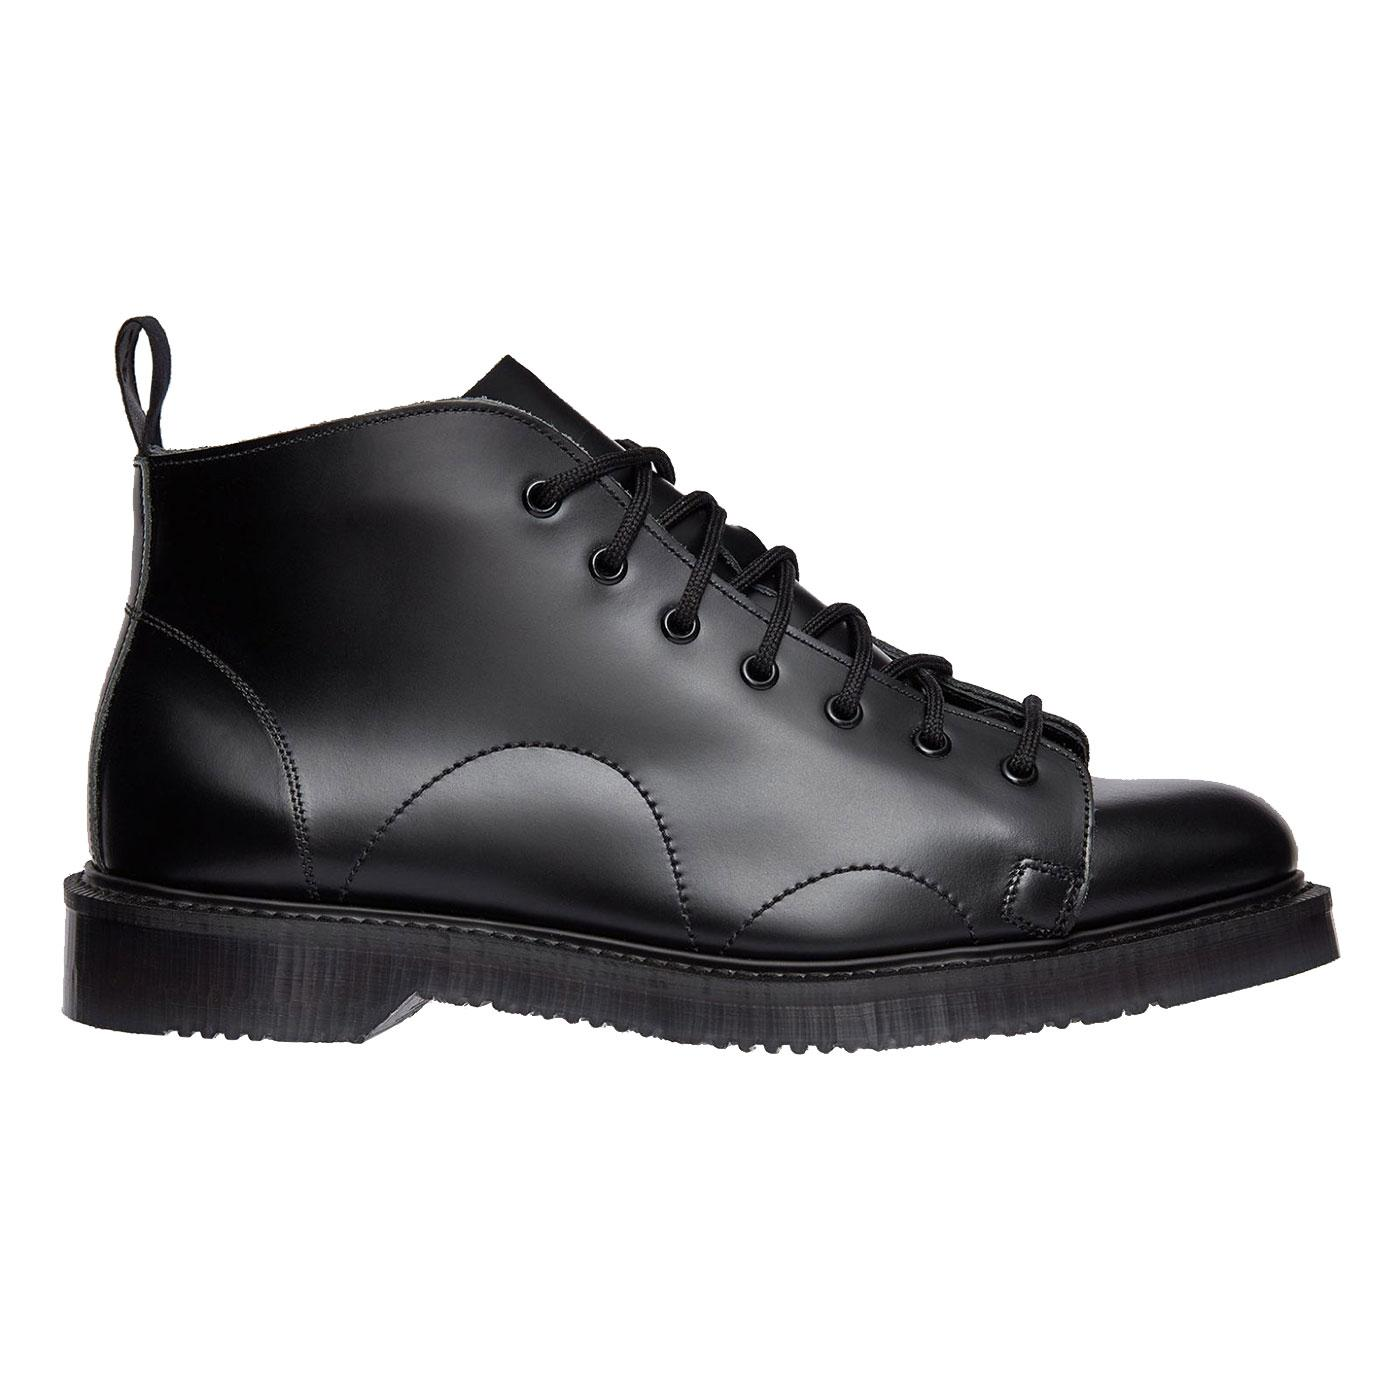 FRED PERRY X GEORGE COX Retro Mod Monkey Boots B